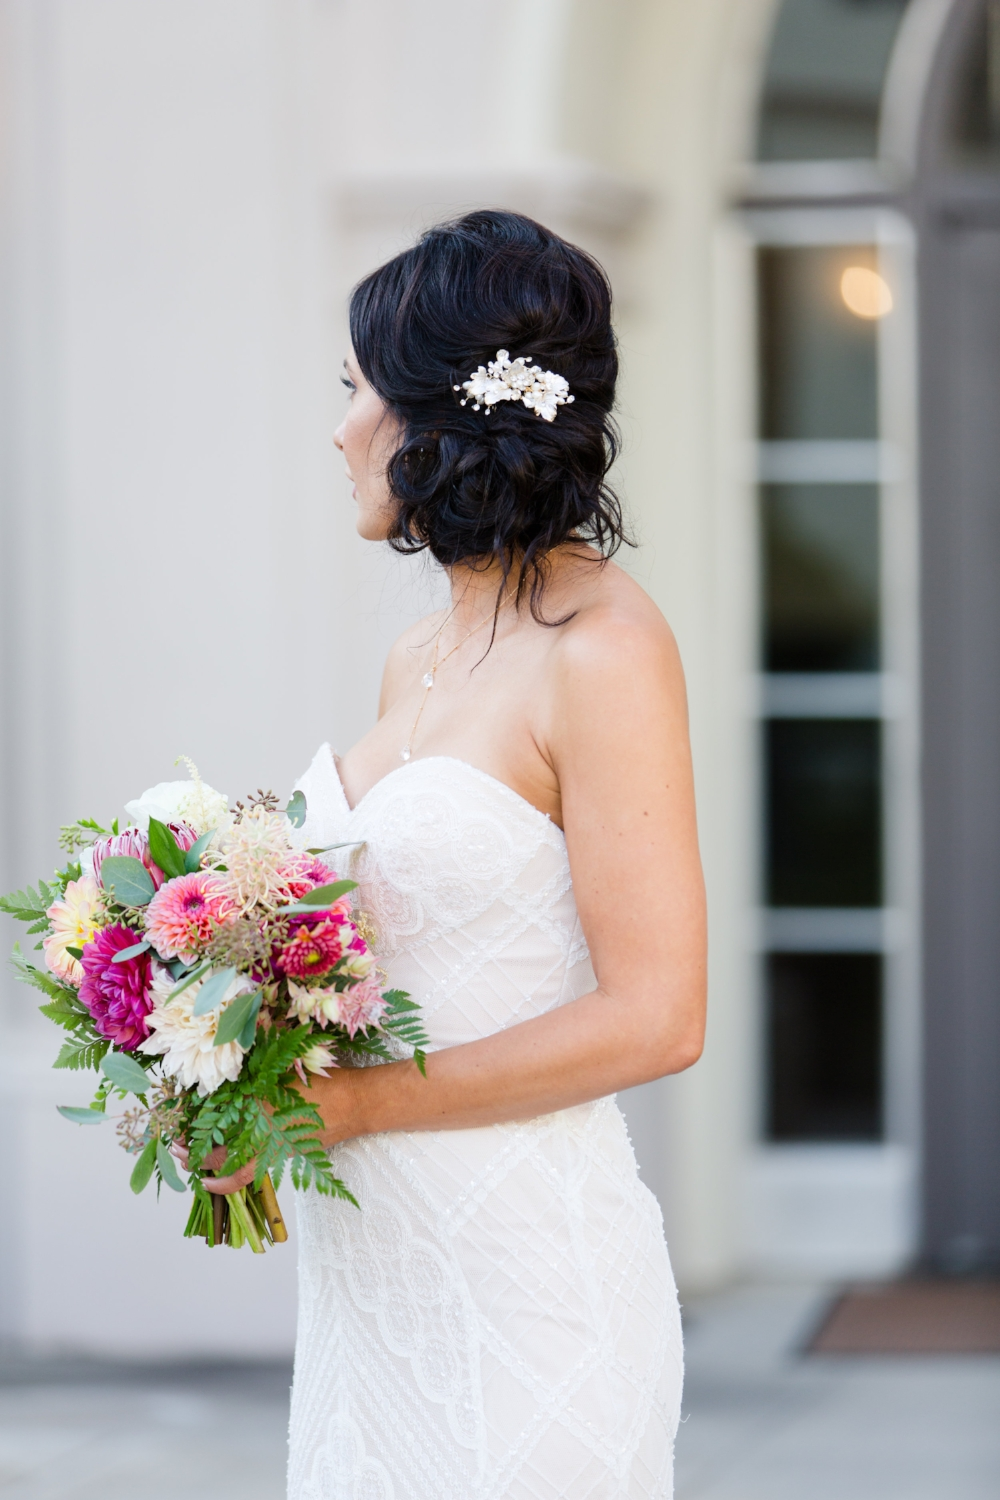 Brunette Bride with Updo and hair accessory holding bouquet outside in Wedding Photography. Bridal Hairstyles and Makeup by Vanity Belle in Orange County (Costa Mesa) and San Diego (La Jolla)